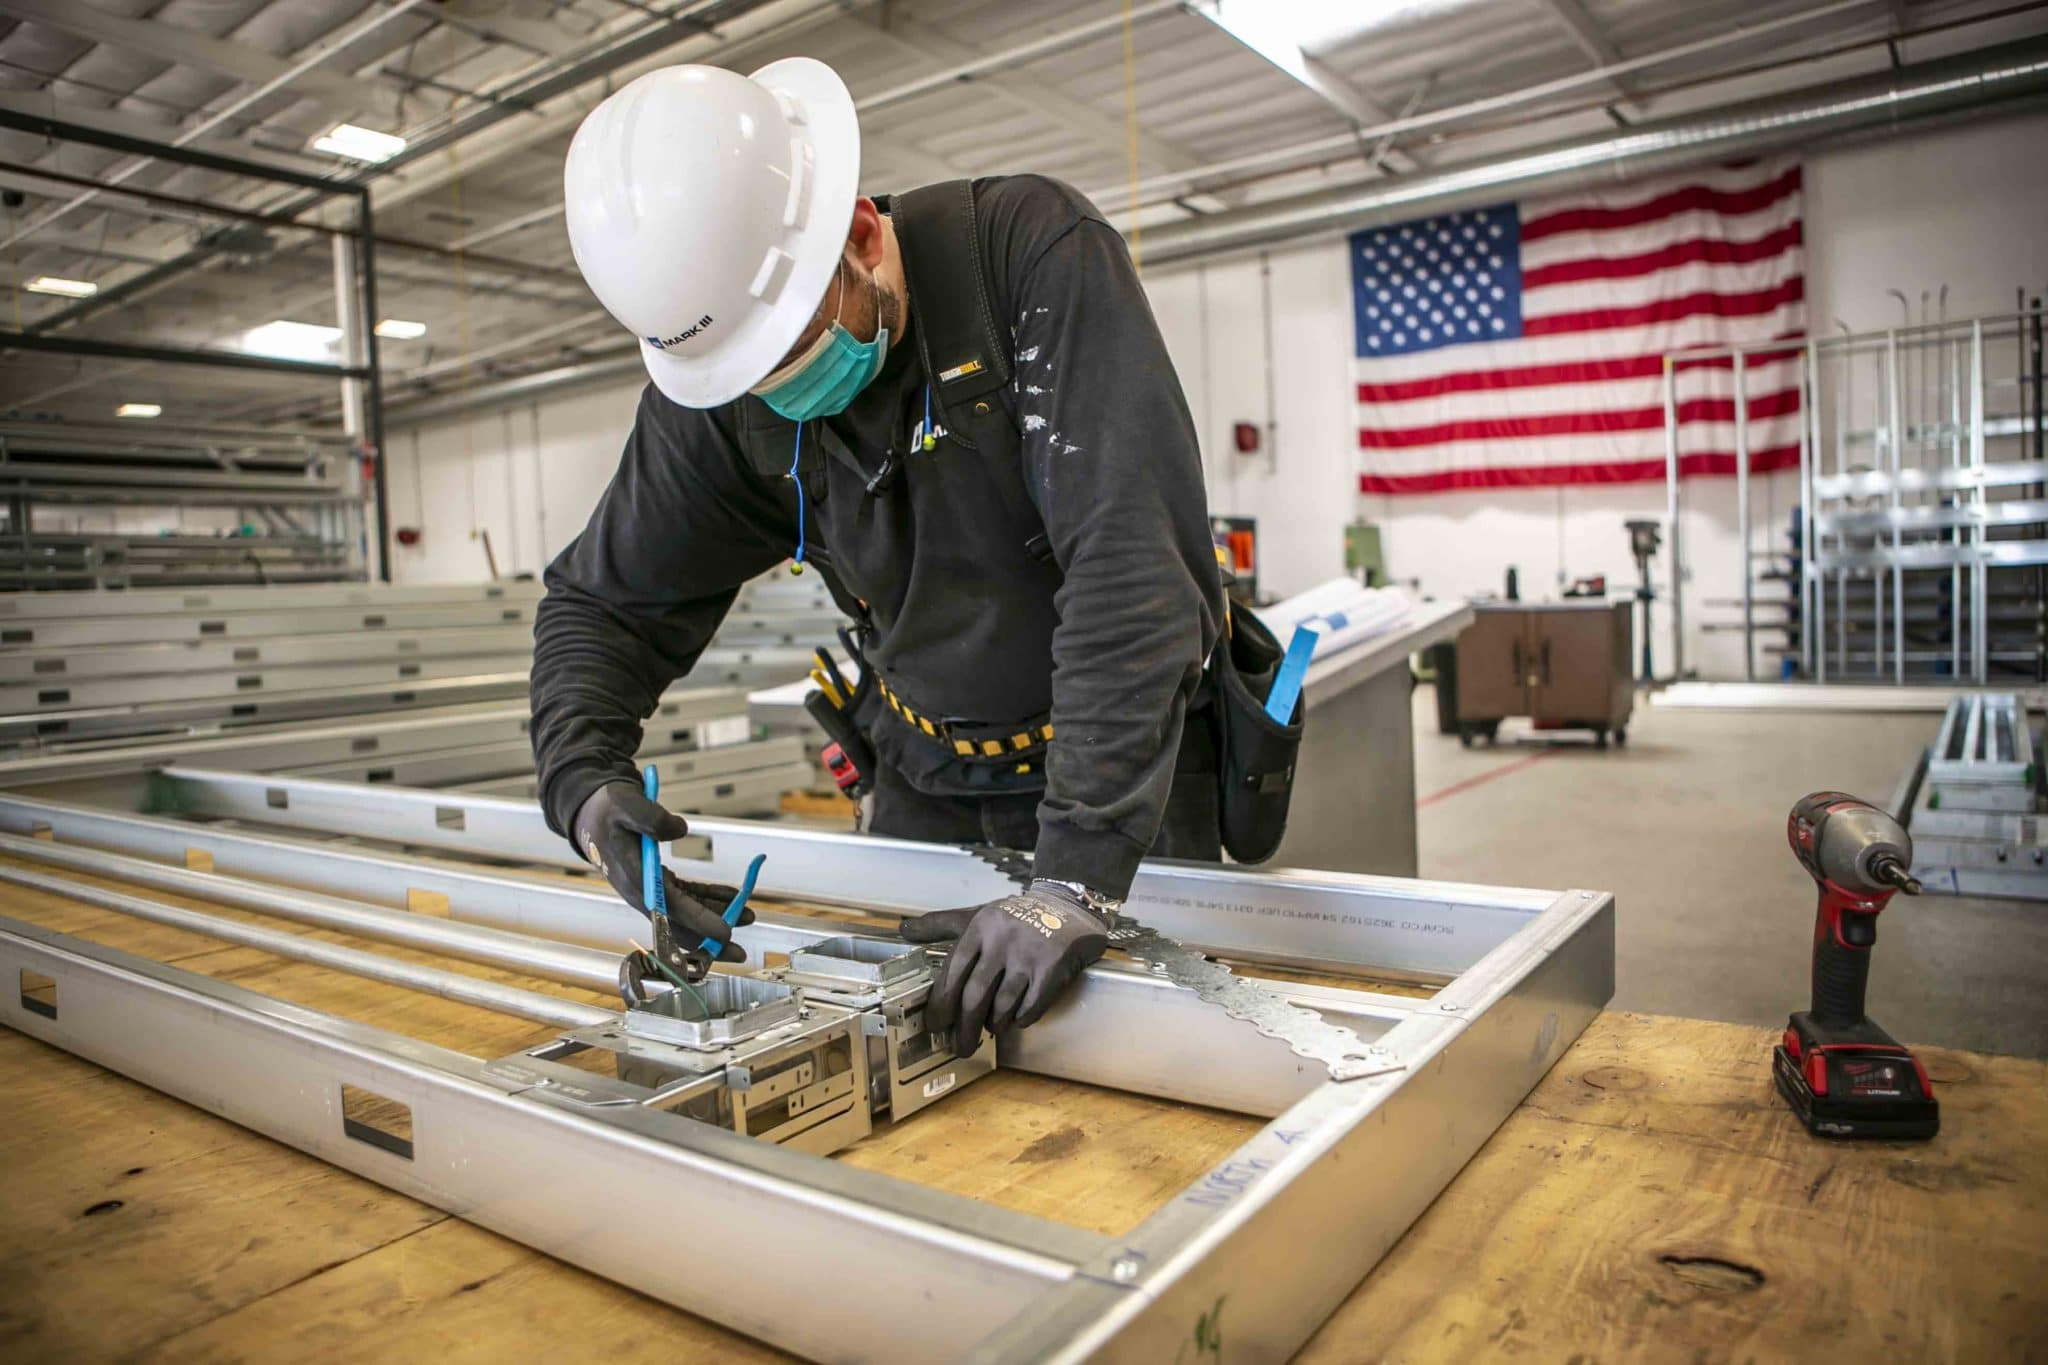 With Project Mountain, Mark III is disrupting the traditional construction process by standardizing design, streamlining material procurement, and leveraging prefabrication and manufacturing to build better, faster, and cheaper.